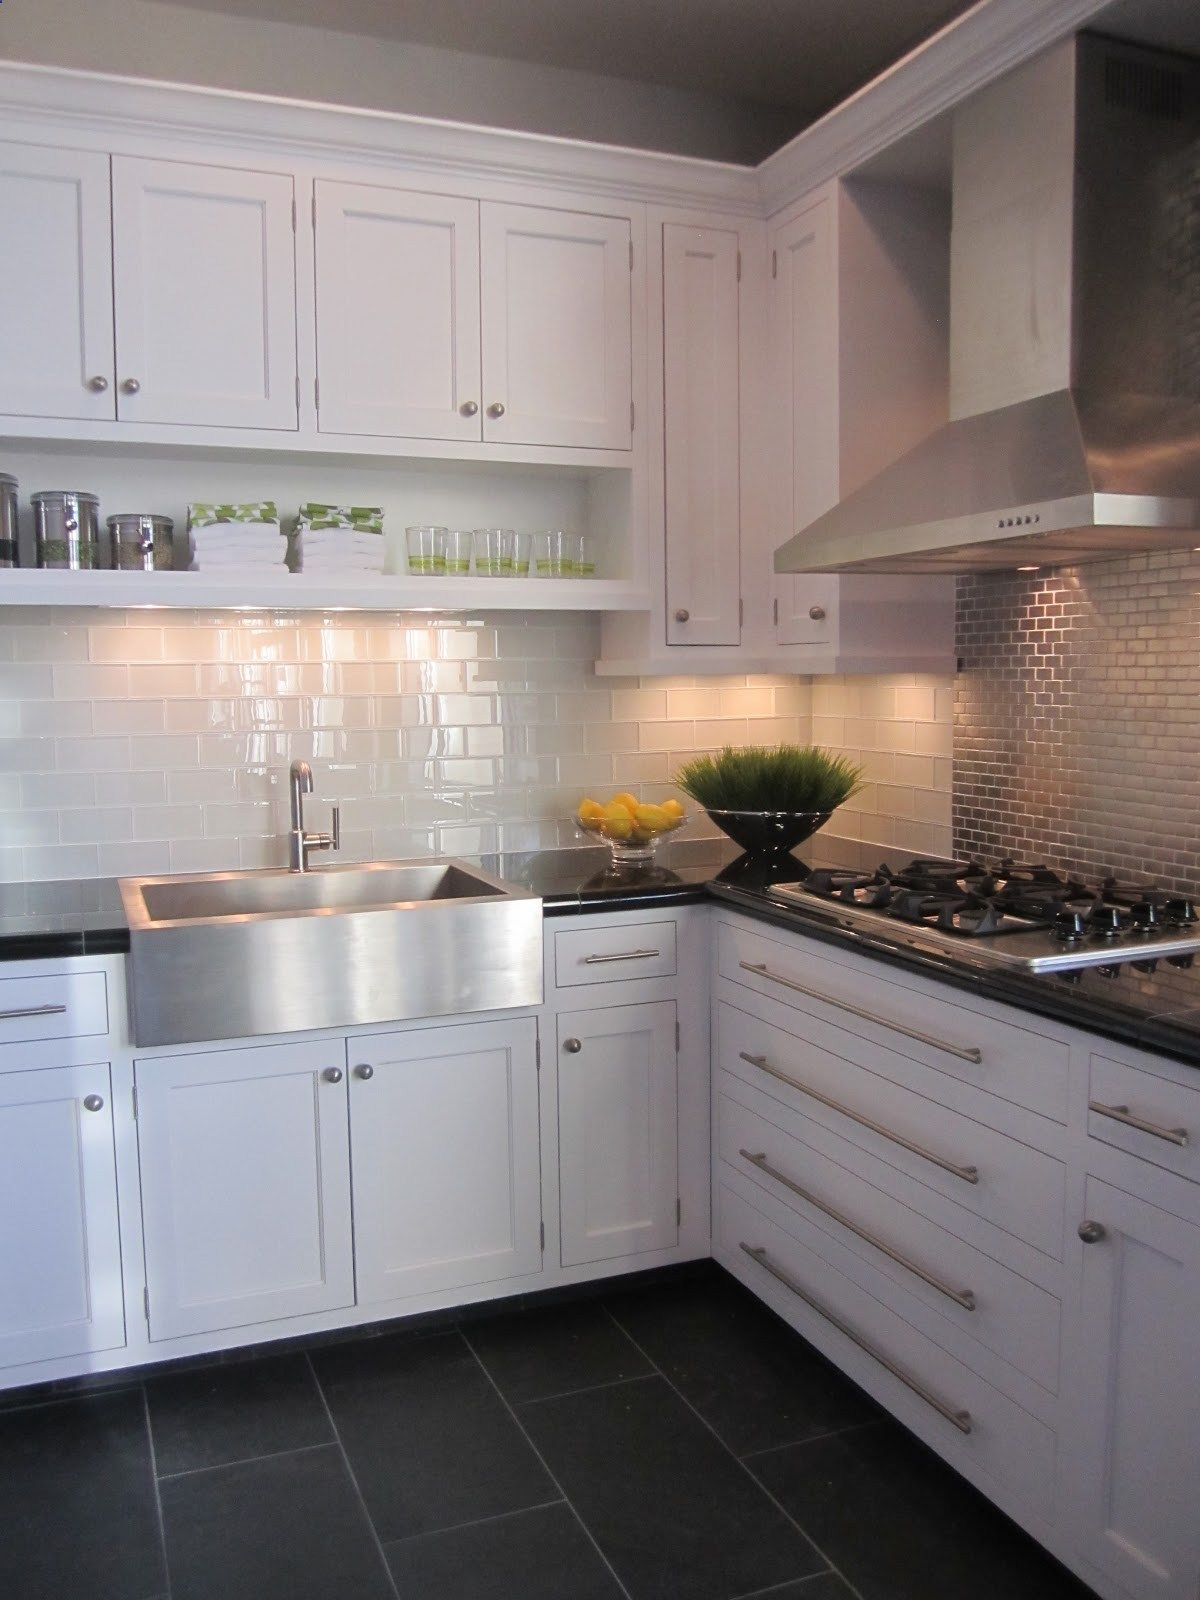 Kitchen White Cabinet Dark Grey Floor Tiles Grey Kitchen Floor Kitchen Flooring Kitchen Renovation